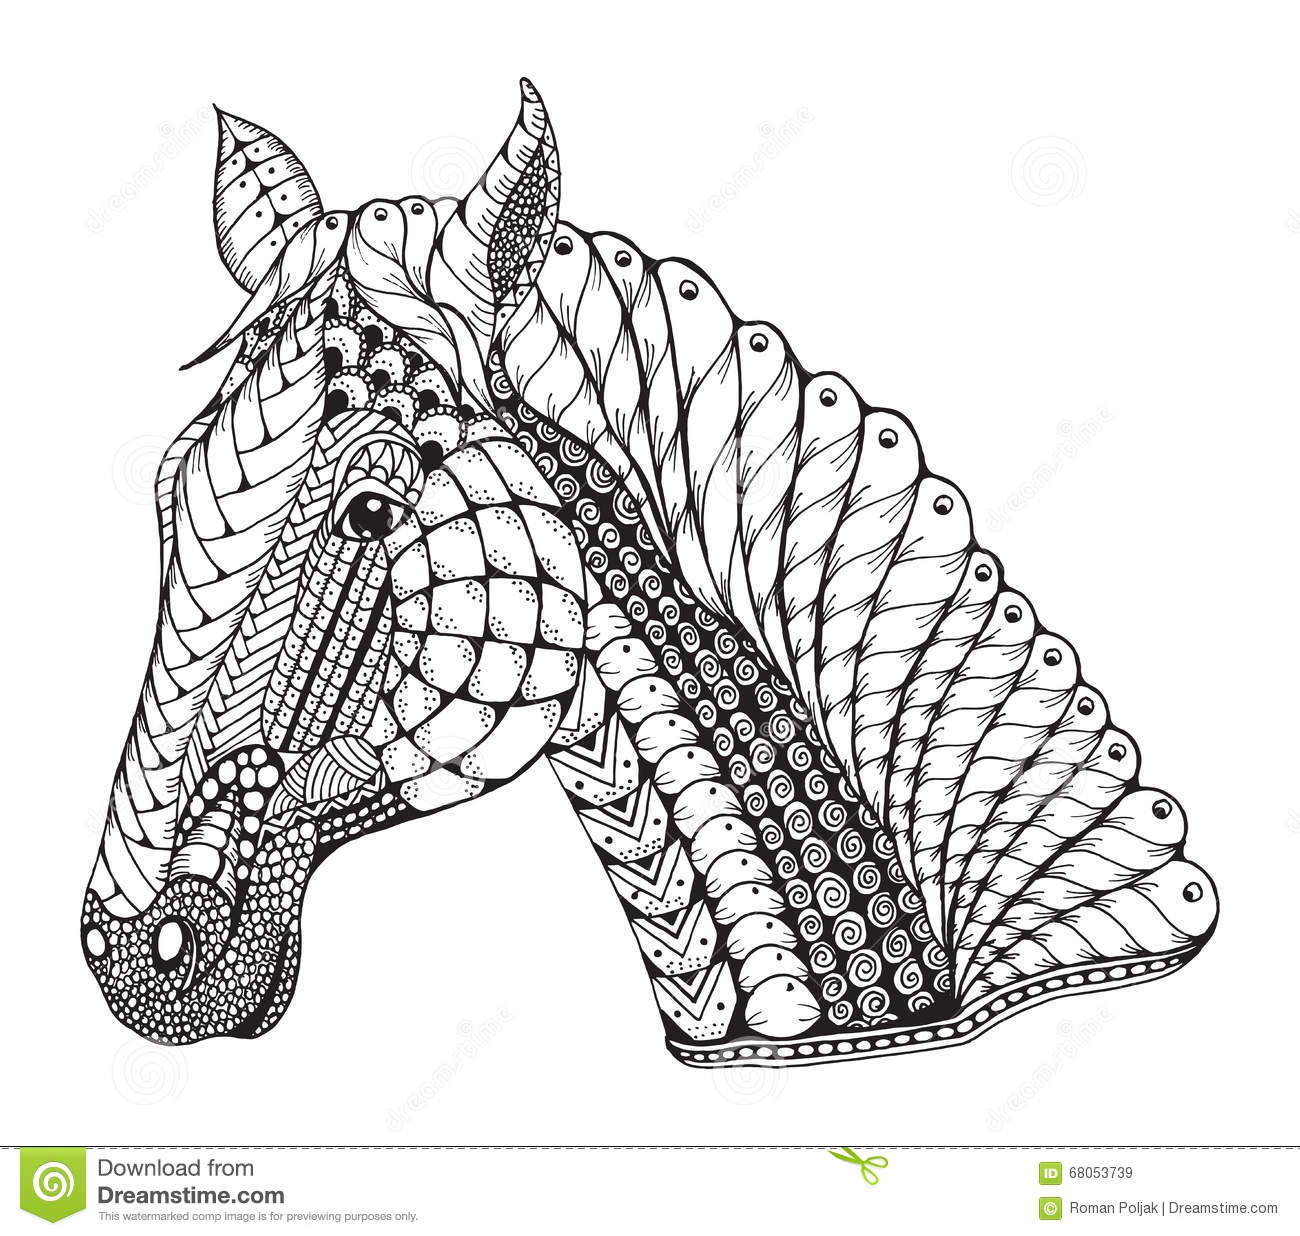 Le zentangle de t te de cheval a stylis illustration de - Mandala de chevaux ...